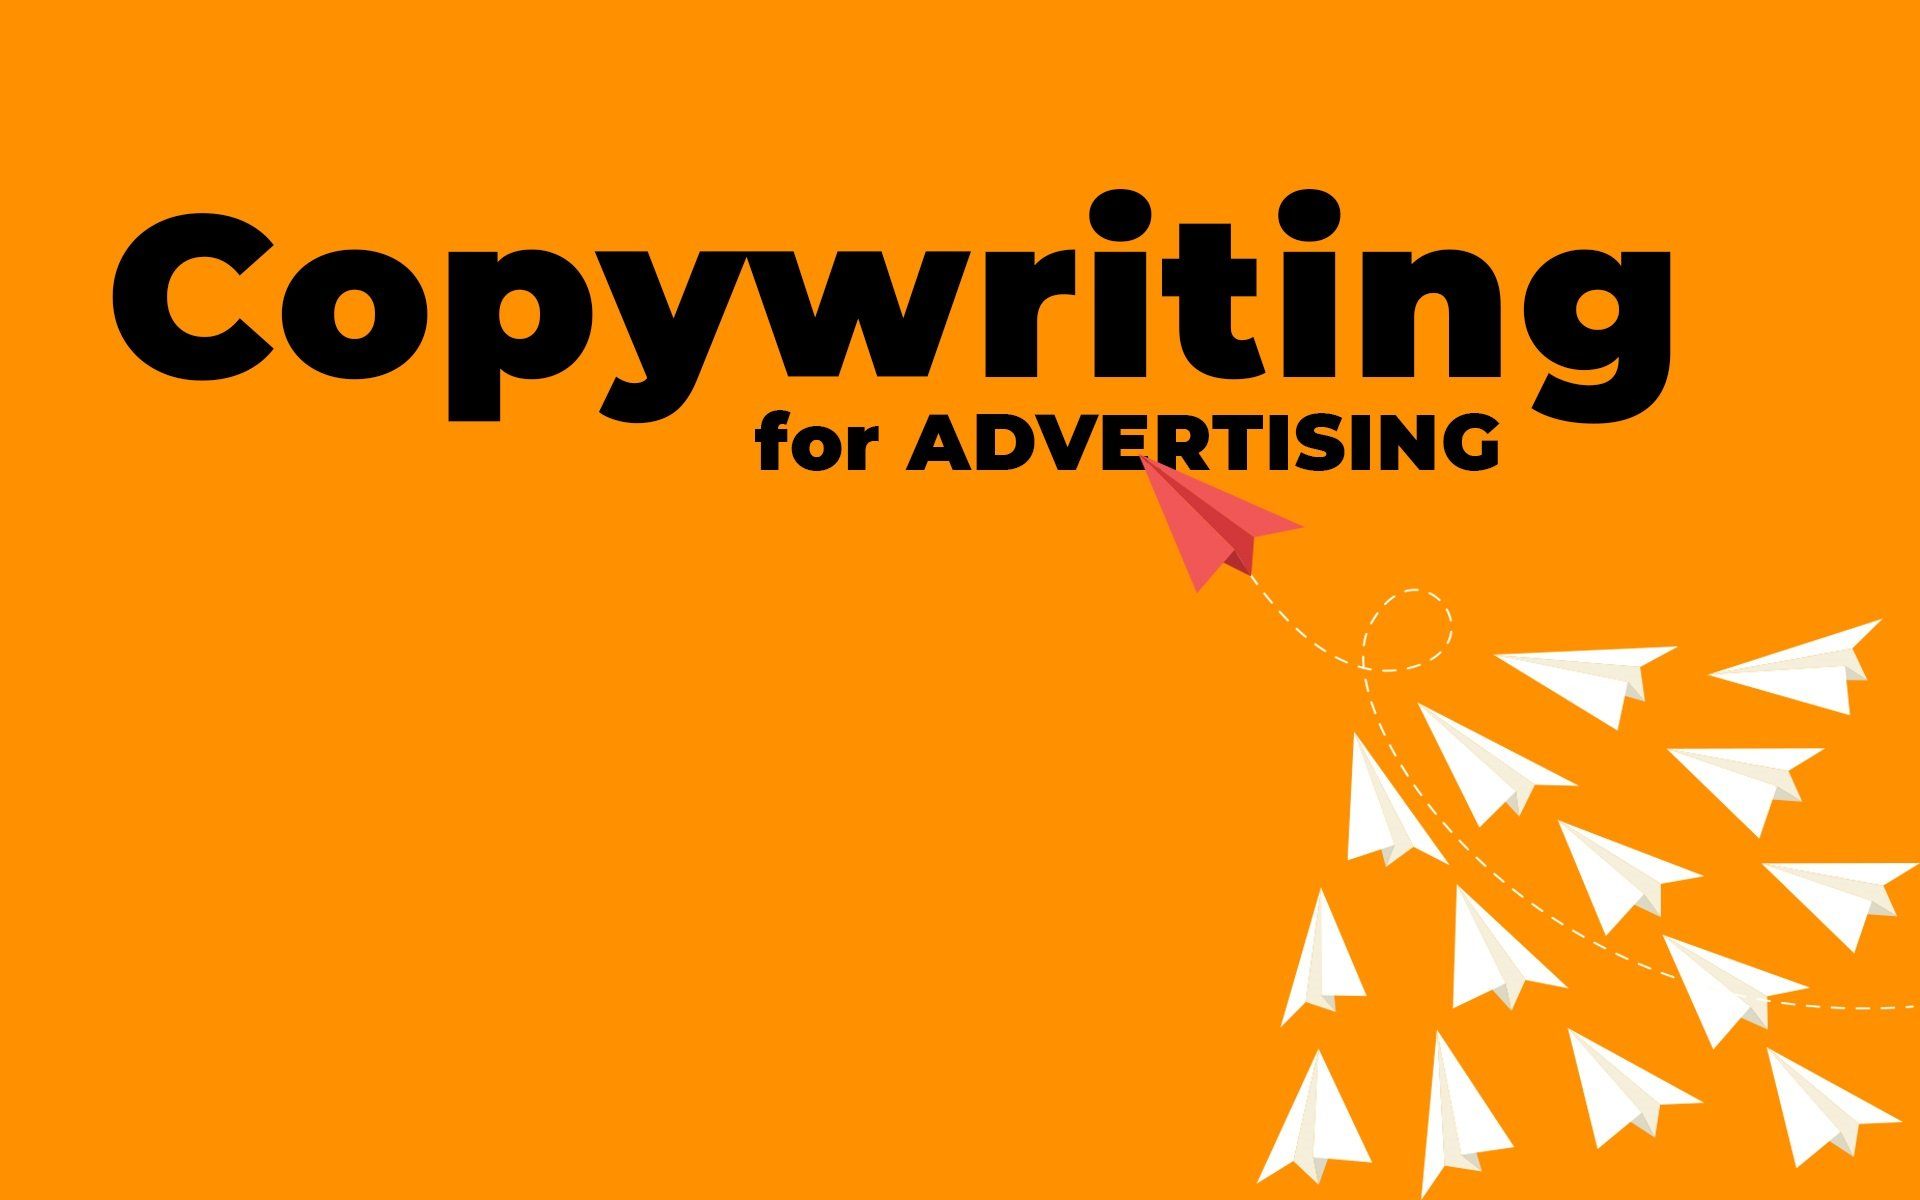 Copywriting For Advertising Head Image